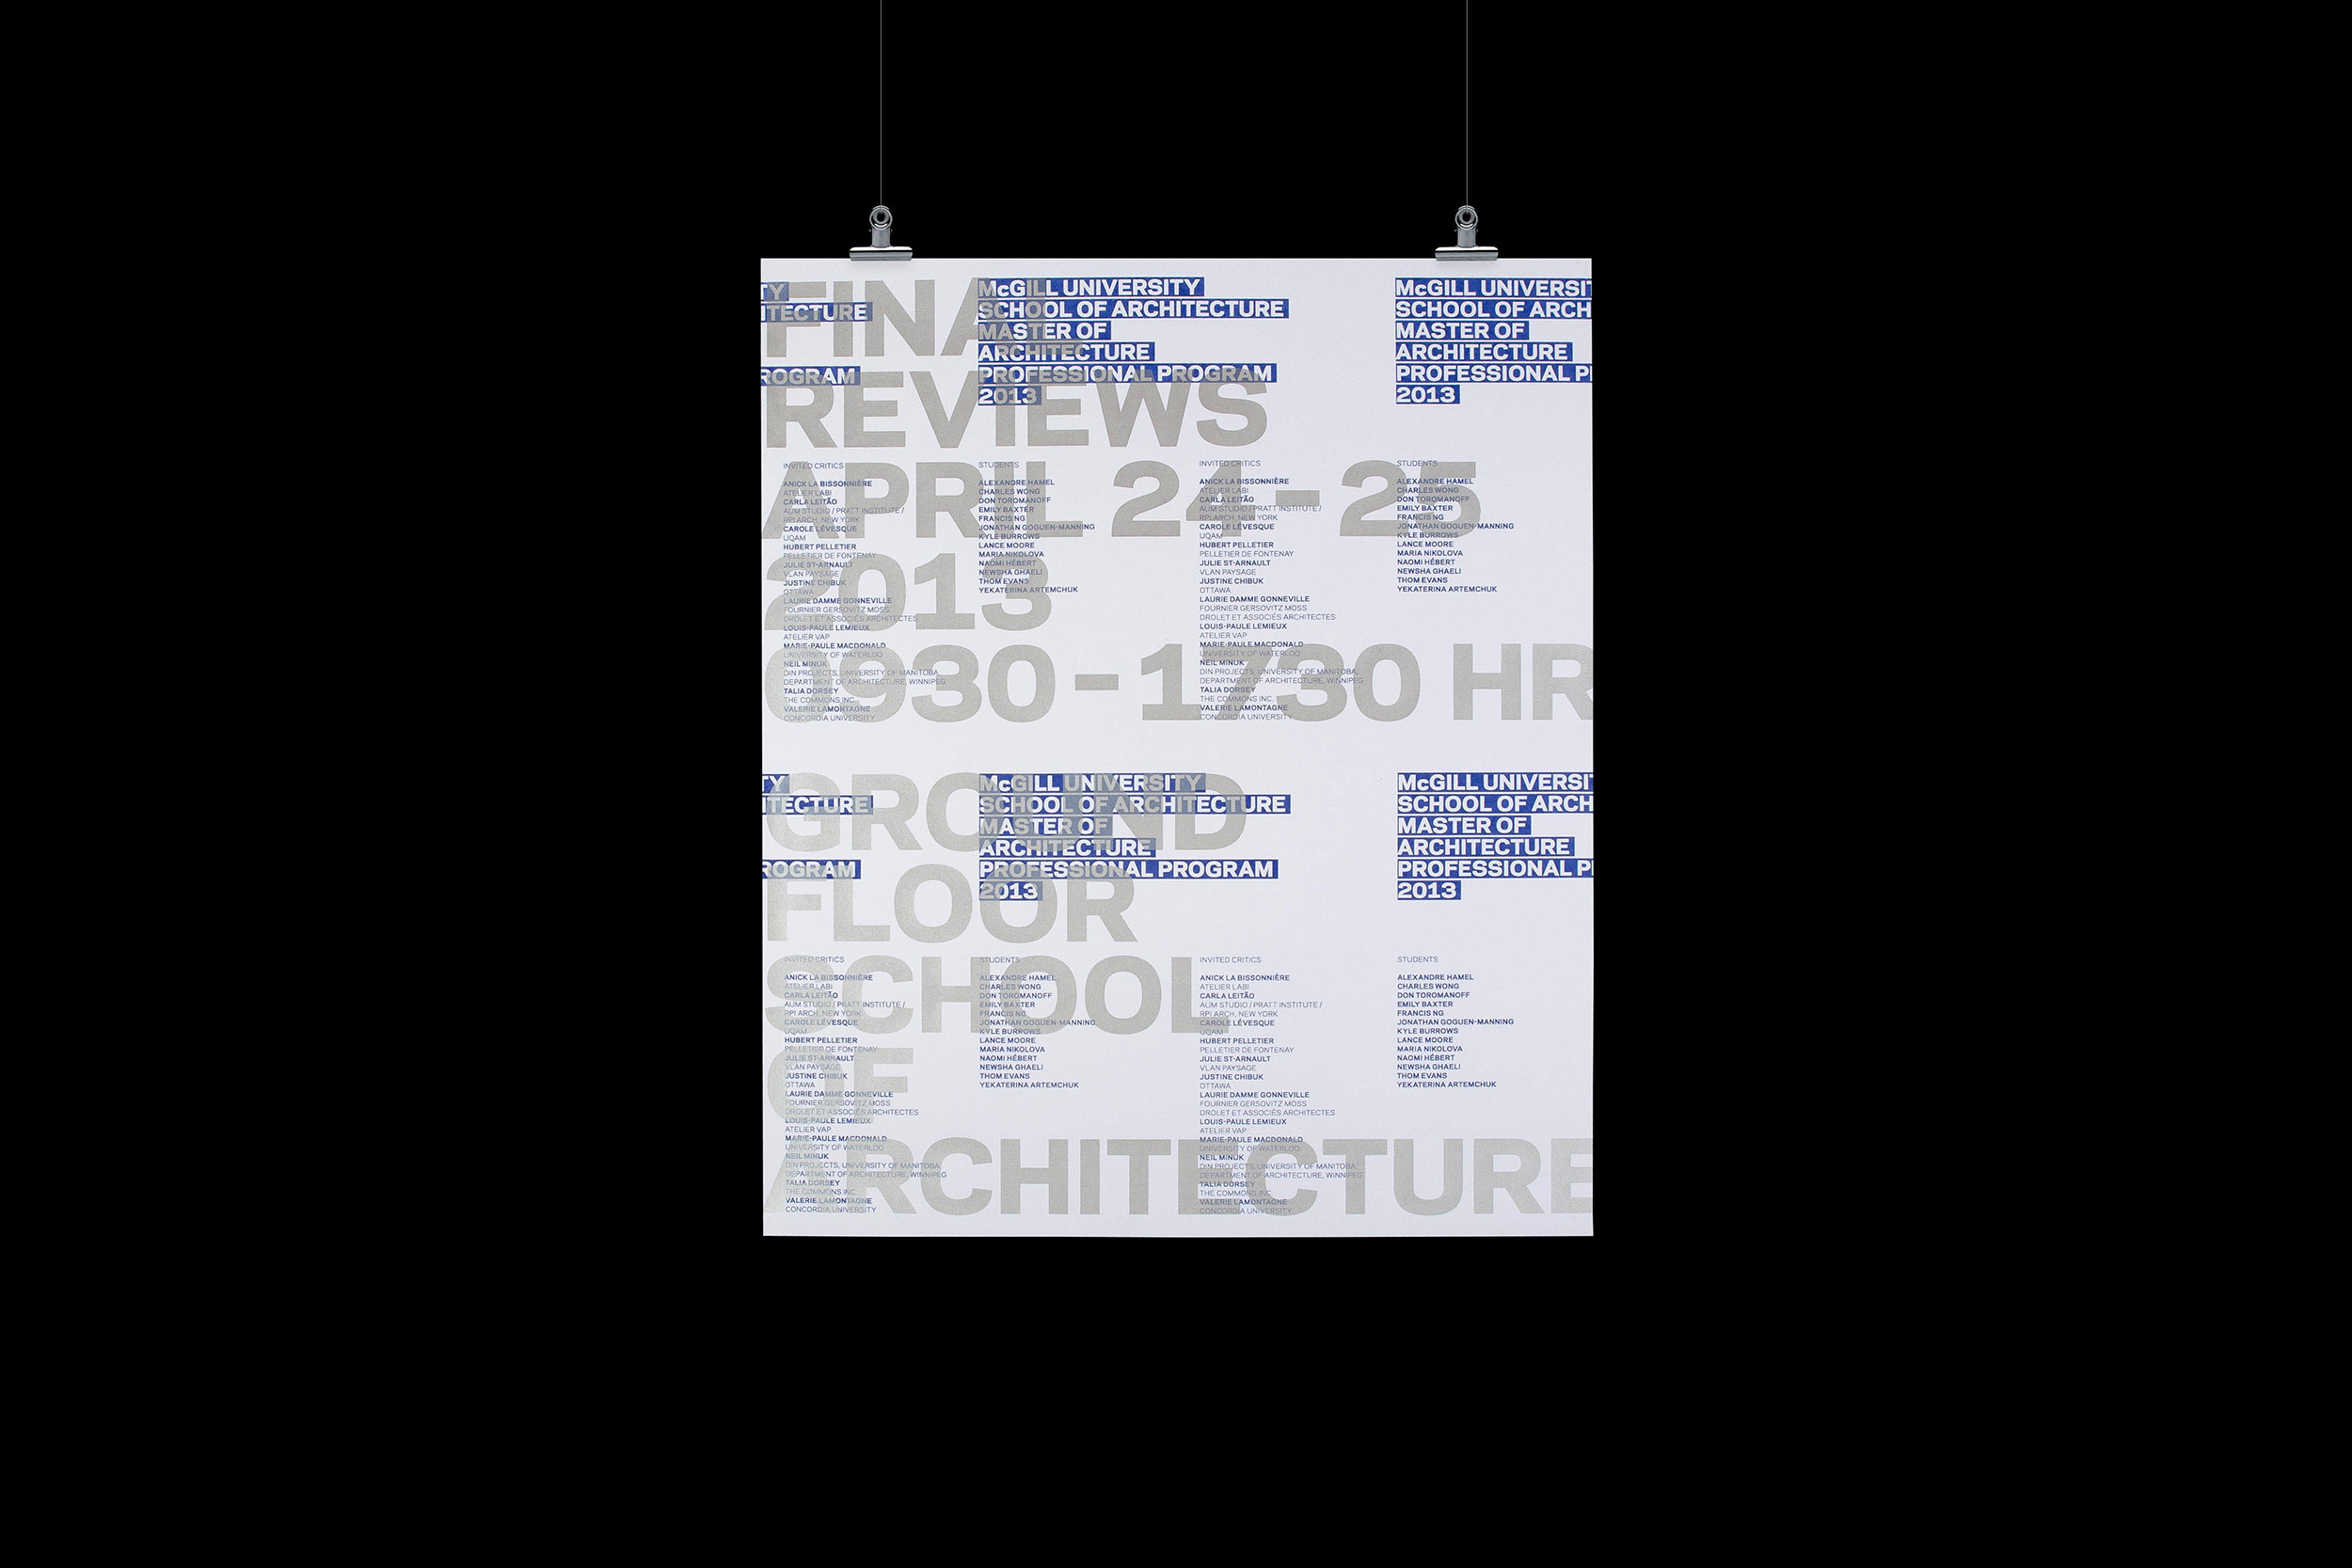 Fond_affiche_arch_final_review